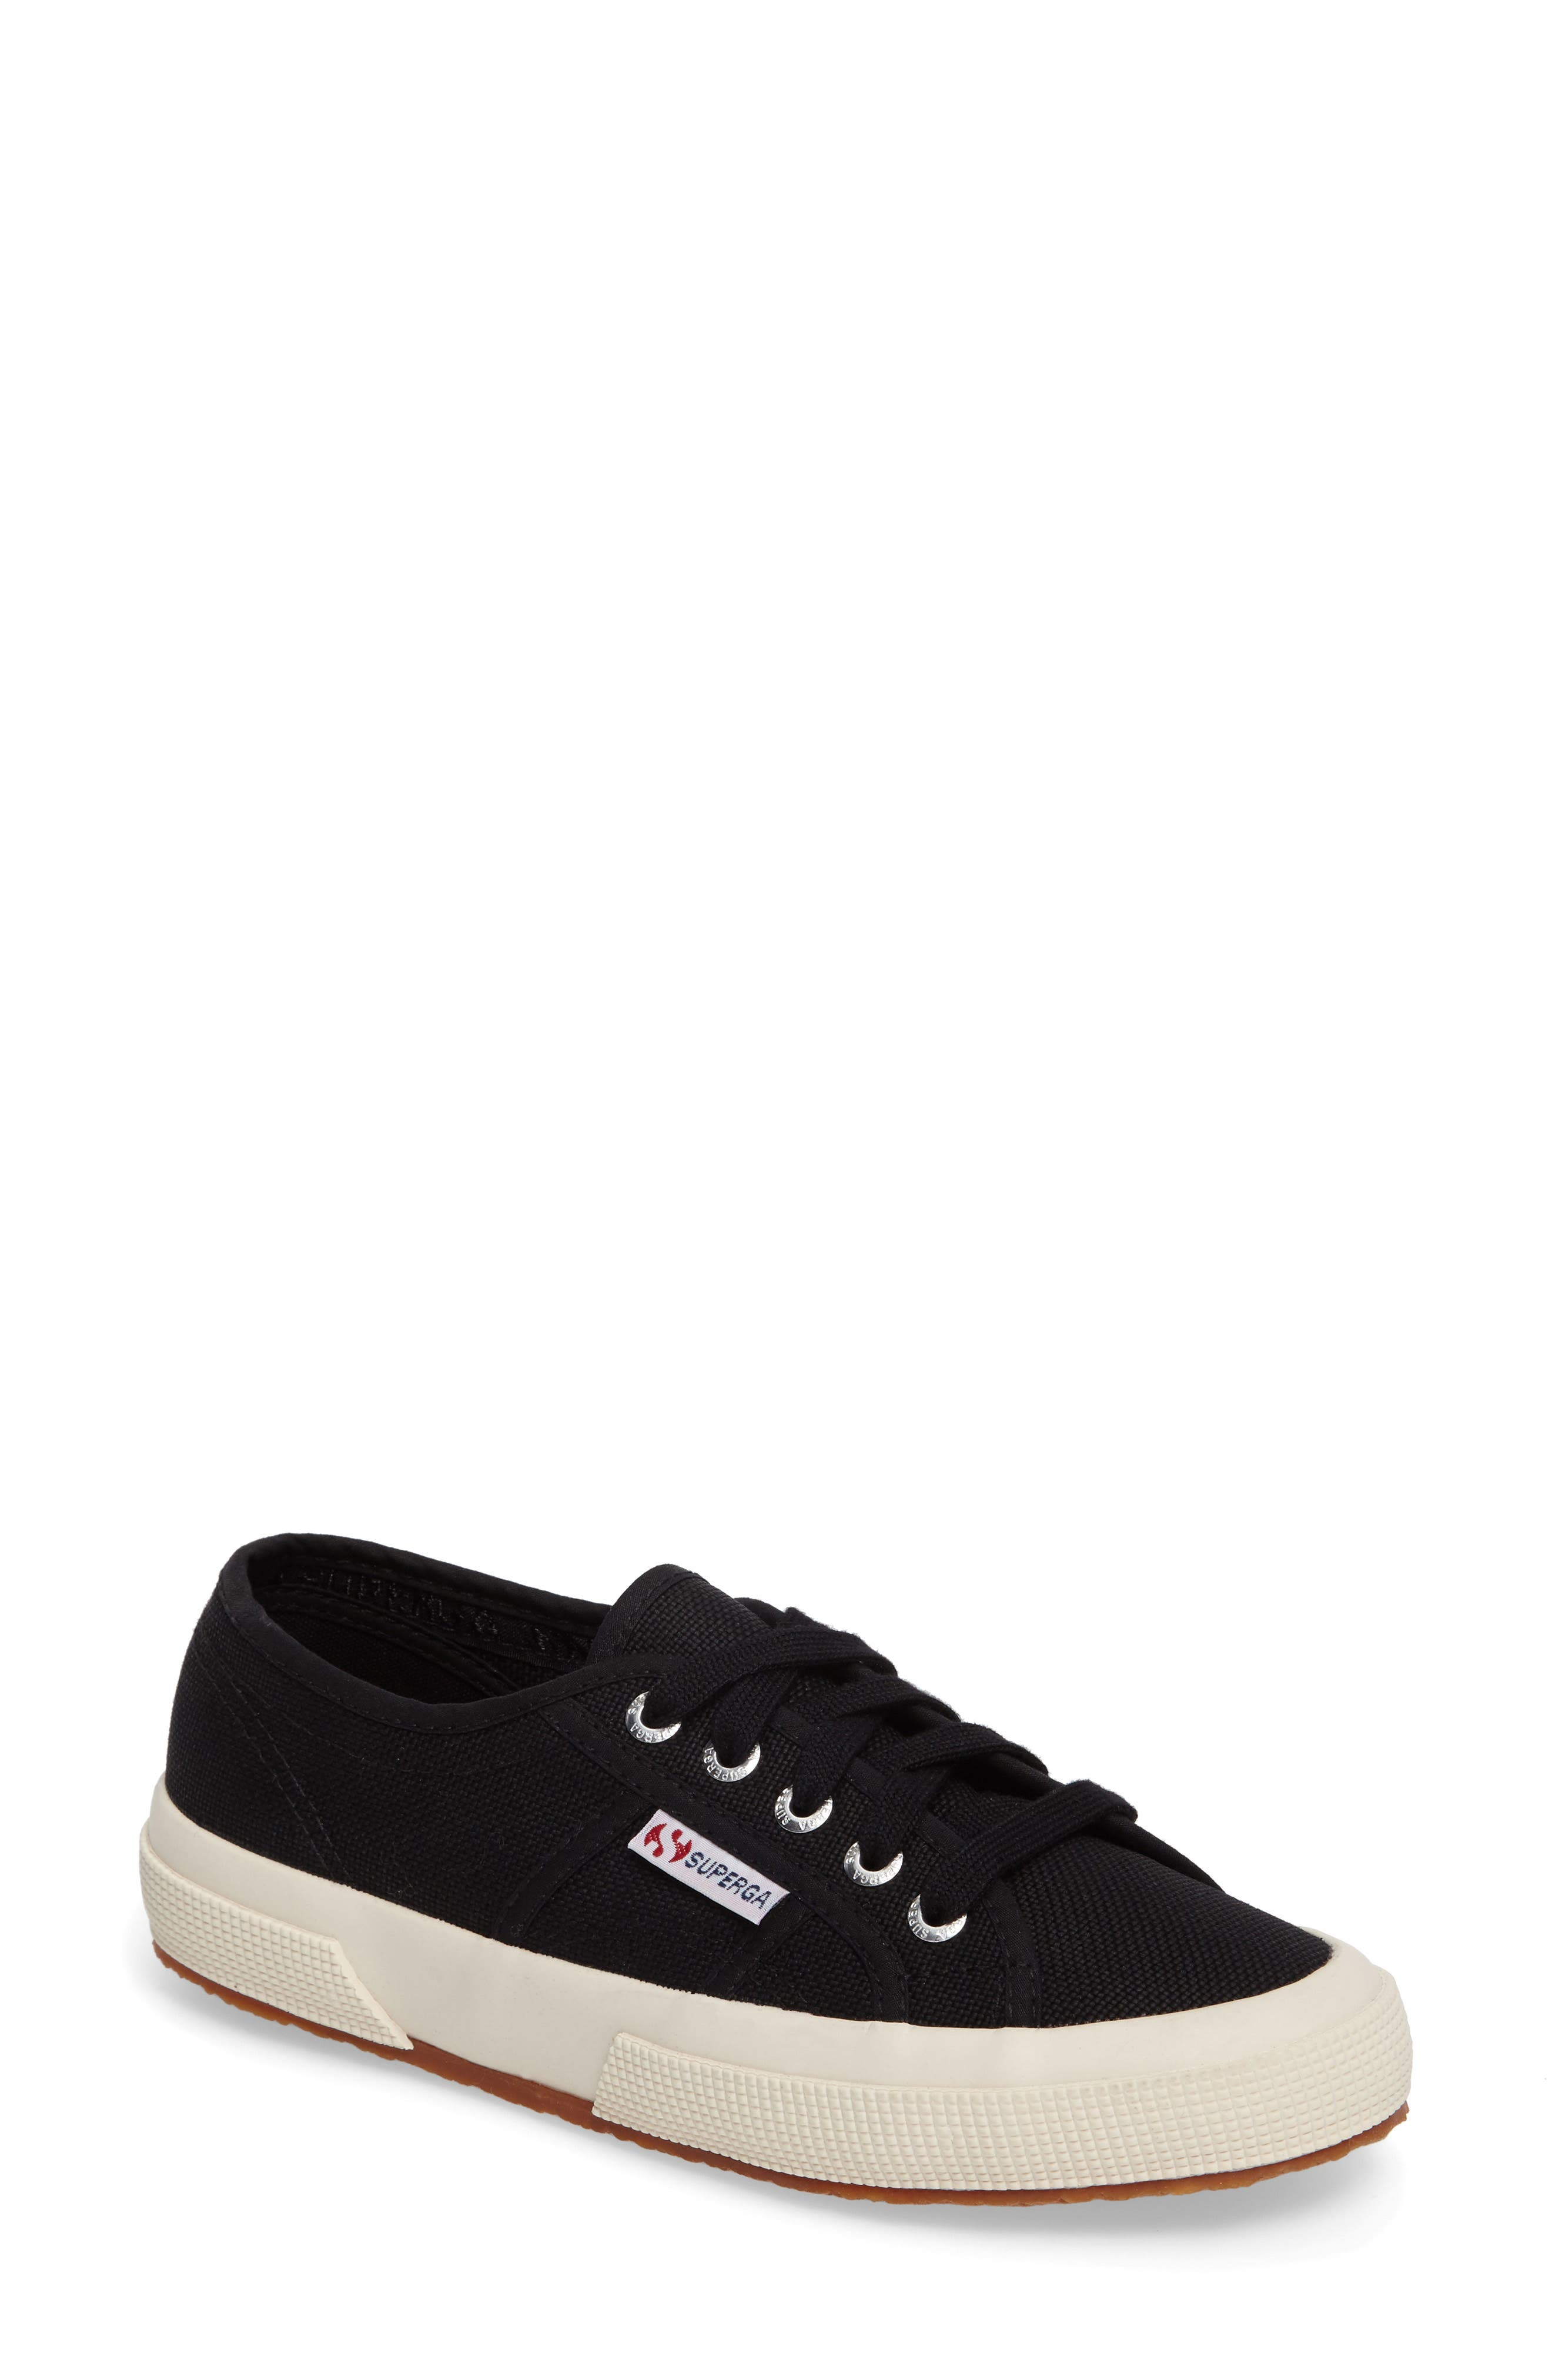 'Cotu' Sneaker,                             Alternate thumbnail 2, color,                             BLACK CANVAS